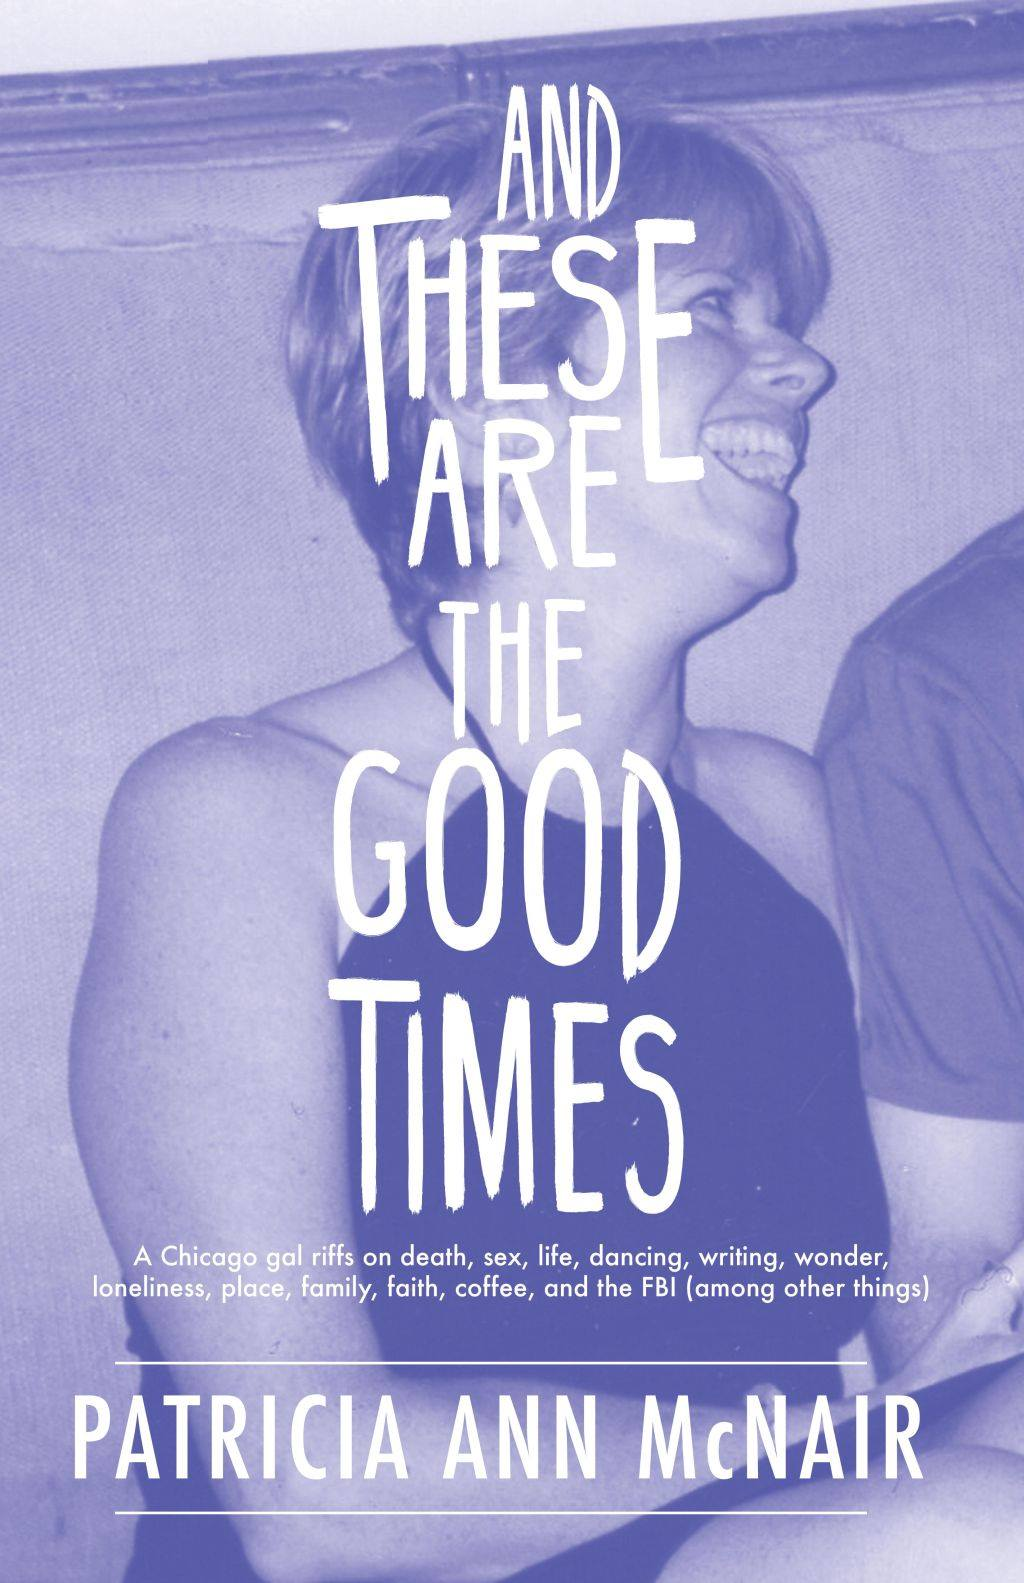 AND THESE ARE THE GOOD TIMES: A Chicago gal riffs on death, sex, life, dancing, writing, wonder, loneliness, place, family, faith, coffee, and the FBI (among other things)